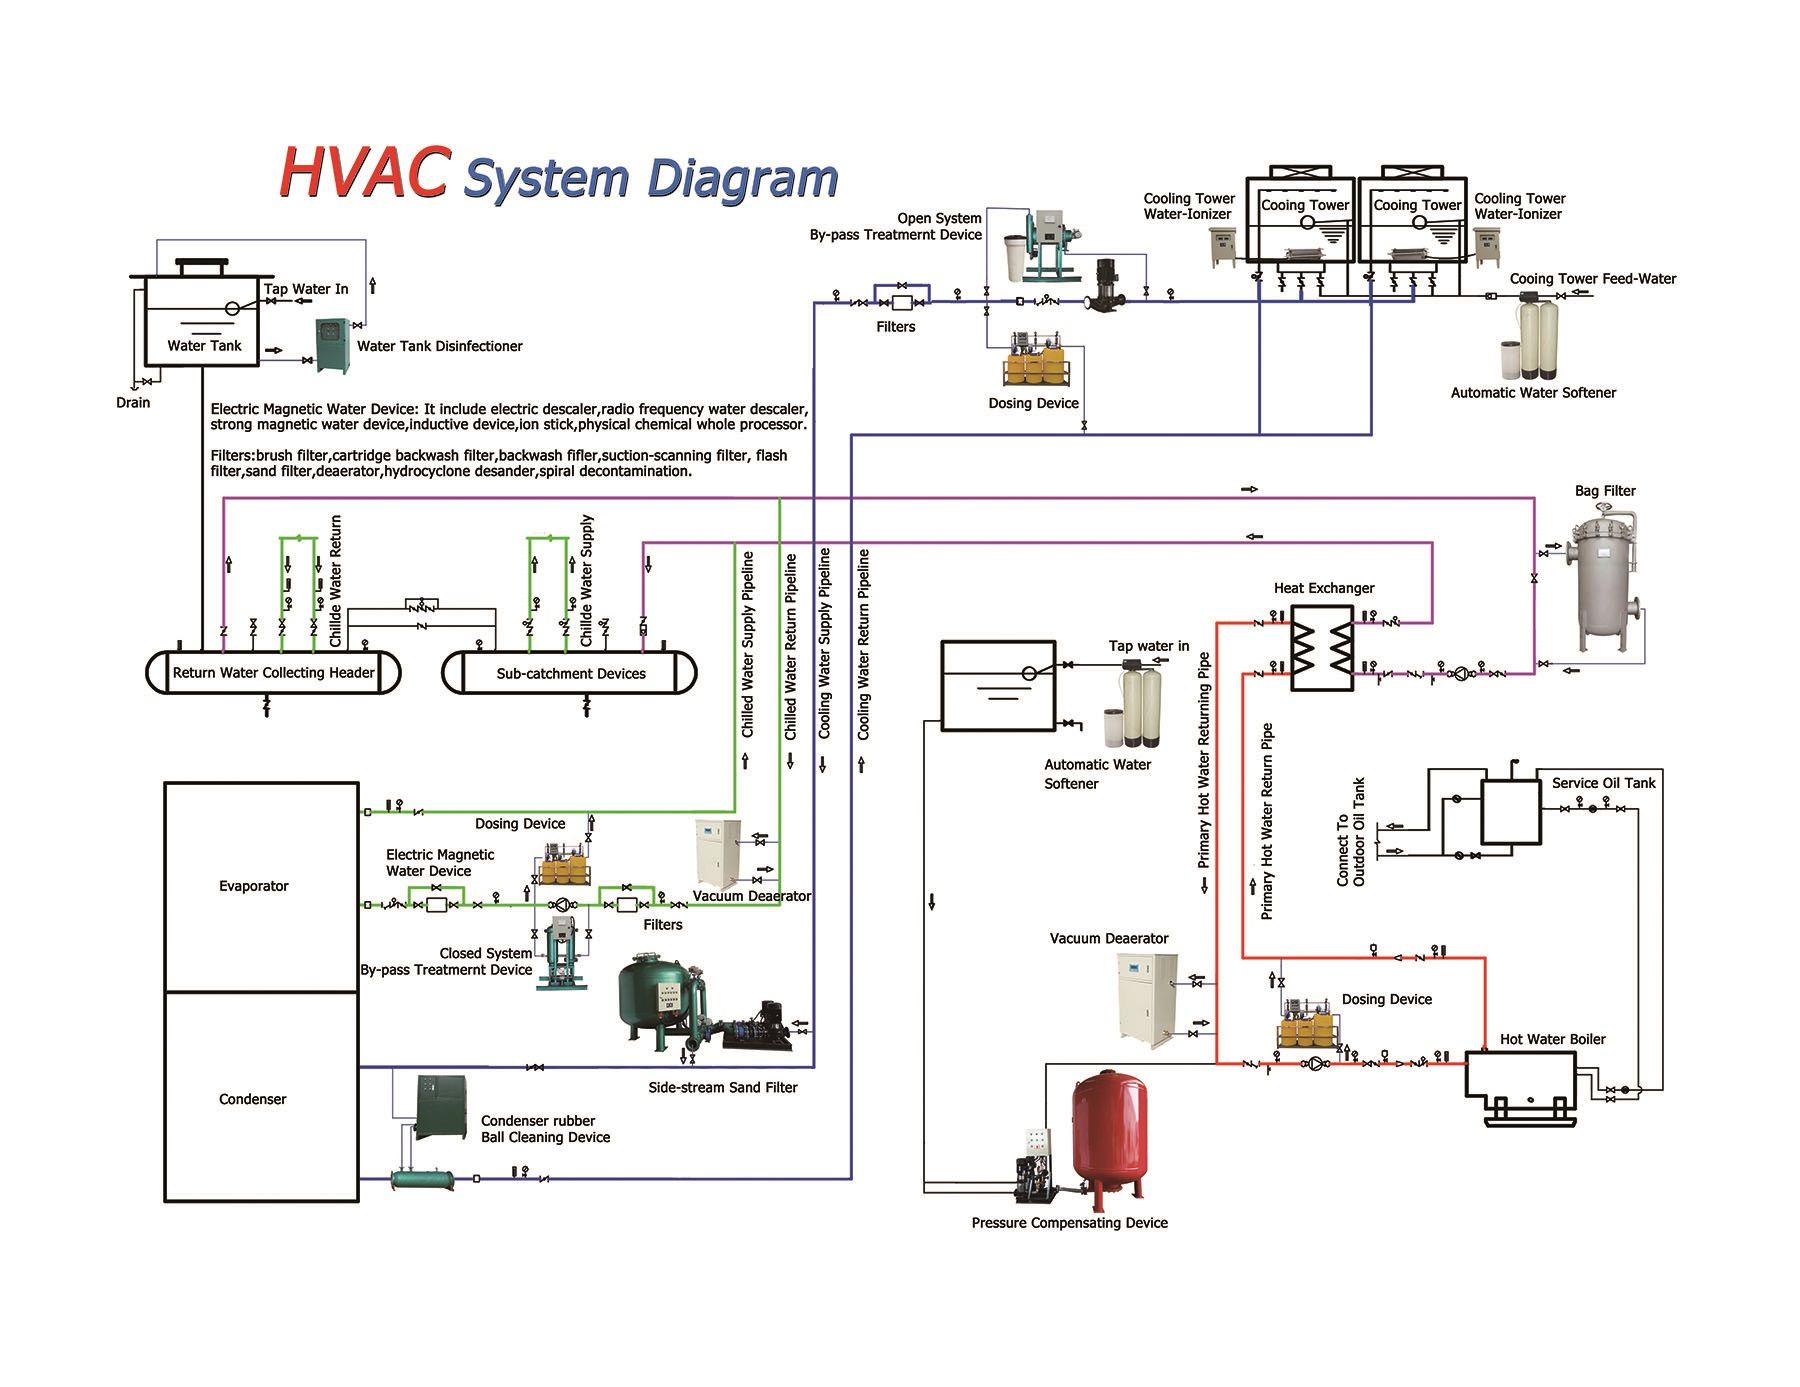 HVAC Diagrams Schematic and System in 2020 Hvac system